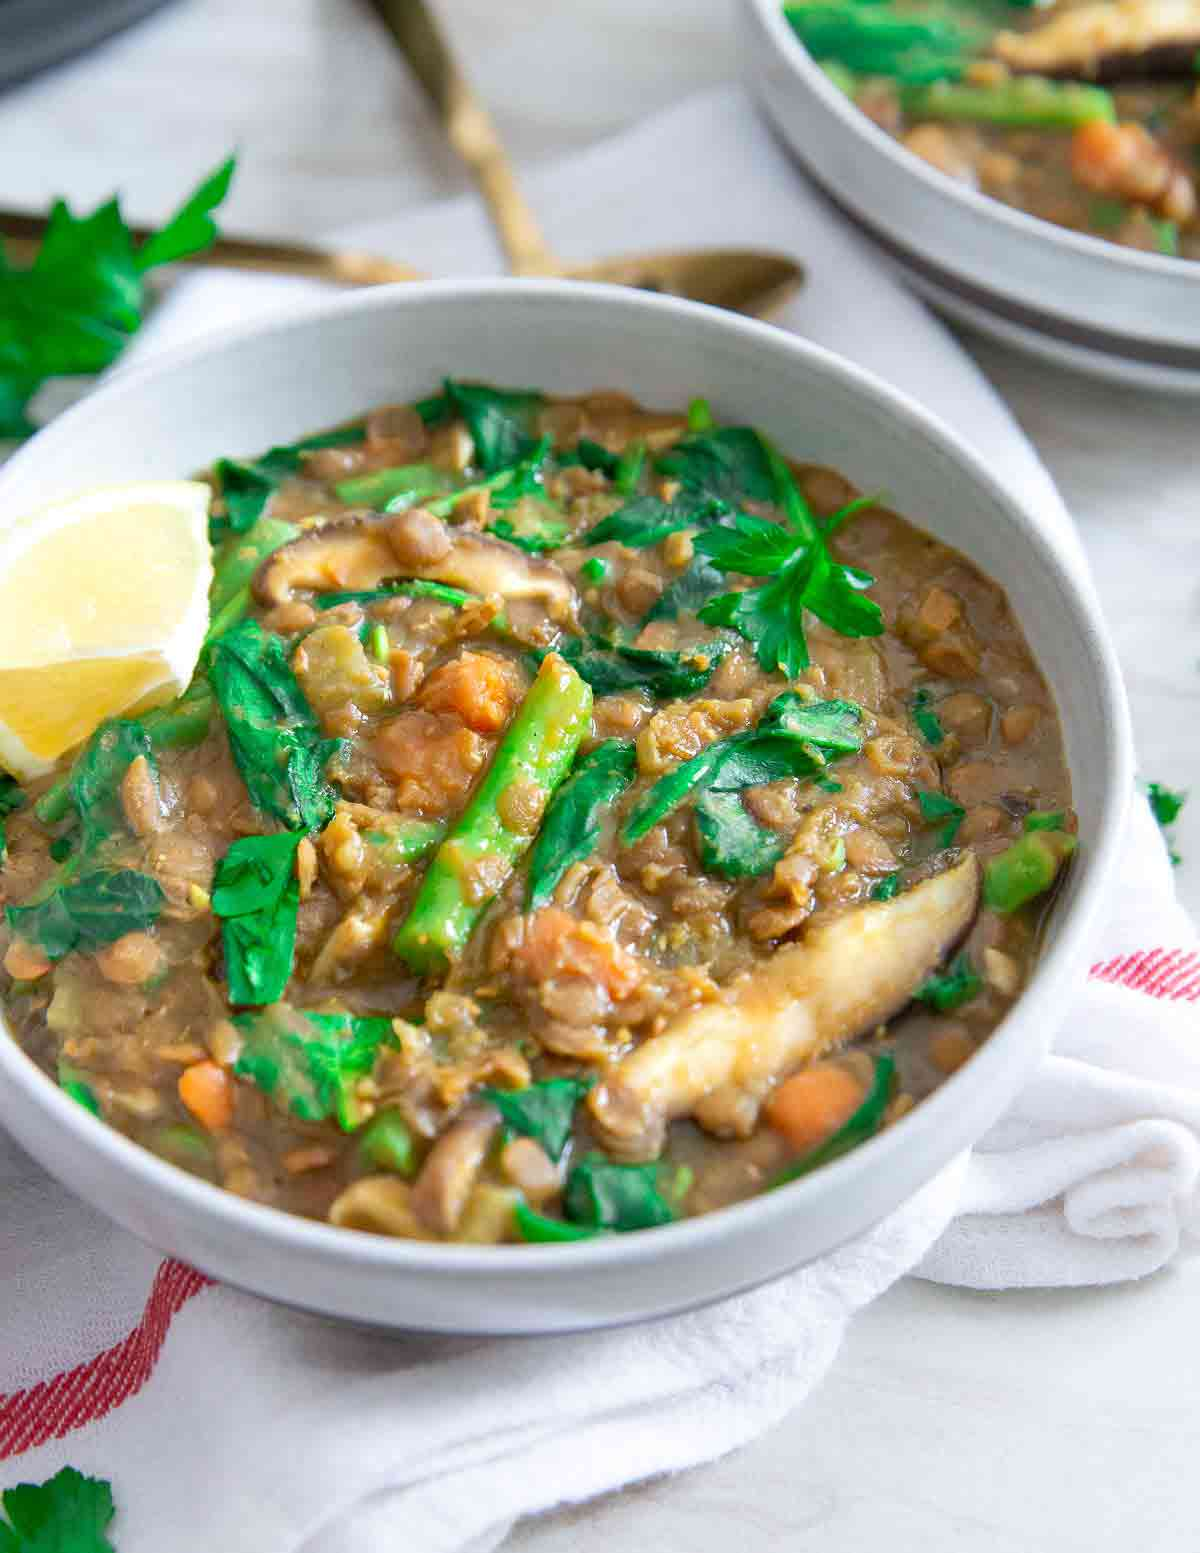 This lentil vegetable soup is packed with mushrooms, green beans and spinach, made entirely in the Instant Pot for a quick and easy comforting vegetarian meal full of flavor.